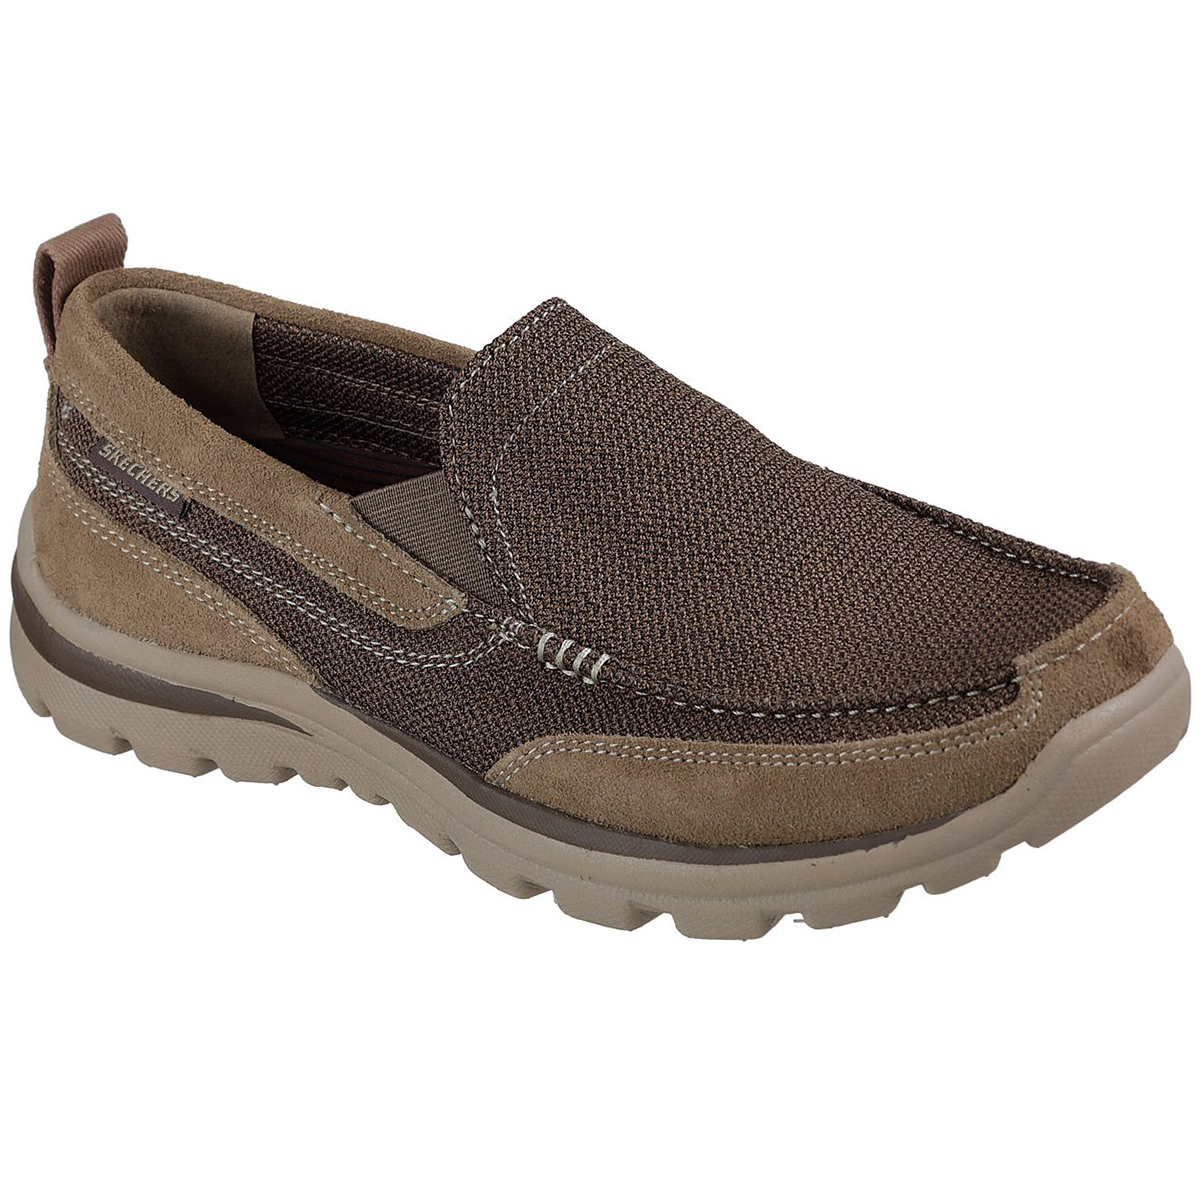 Skechers Men's Relaxed Fit: Superior- Milford Slip-On Shoes - Brown, 9.5